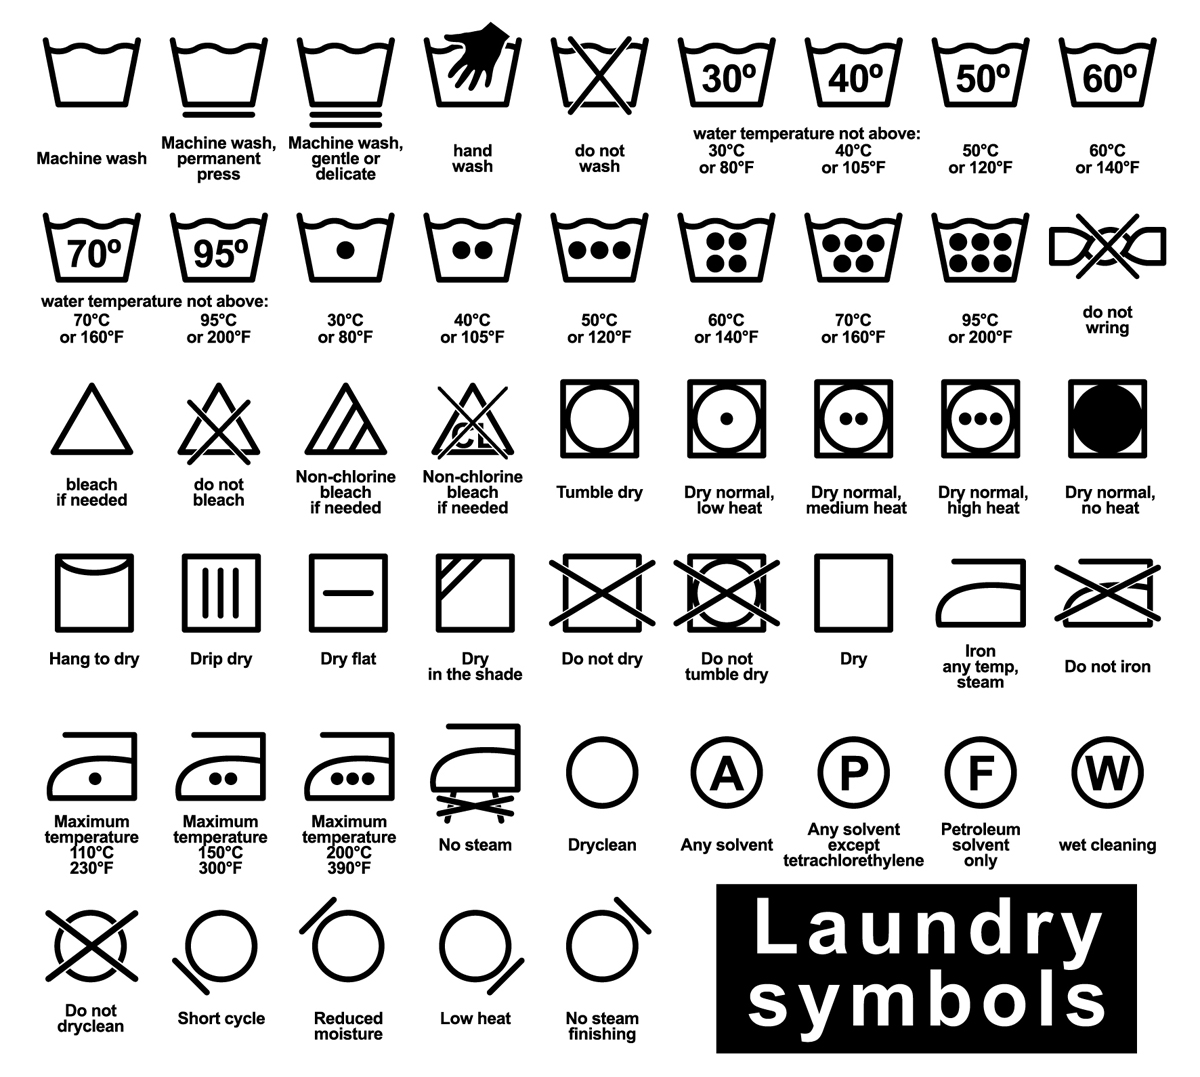 A laundry symbol, also called a care symbol, is a pictogram which represents a method of washing, for example drying, dry-cleaning and ironing clothing. Such symbols are written on labels, known as care labels or care tags, attached to clothing to indicate how a particular item should best be cleaned.